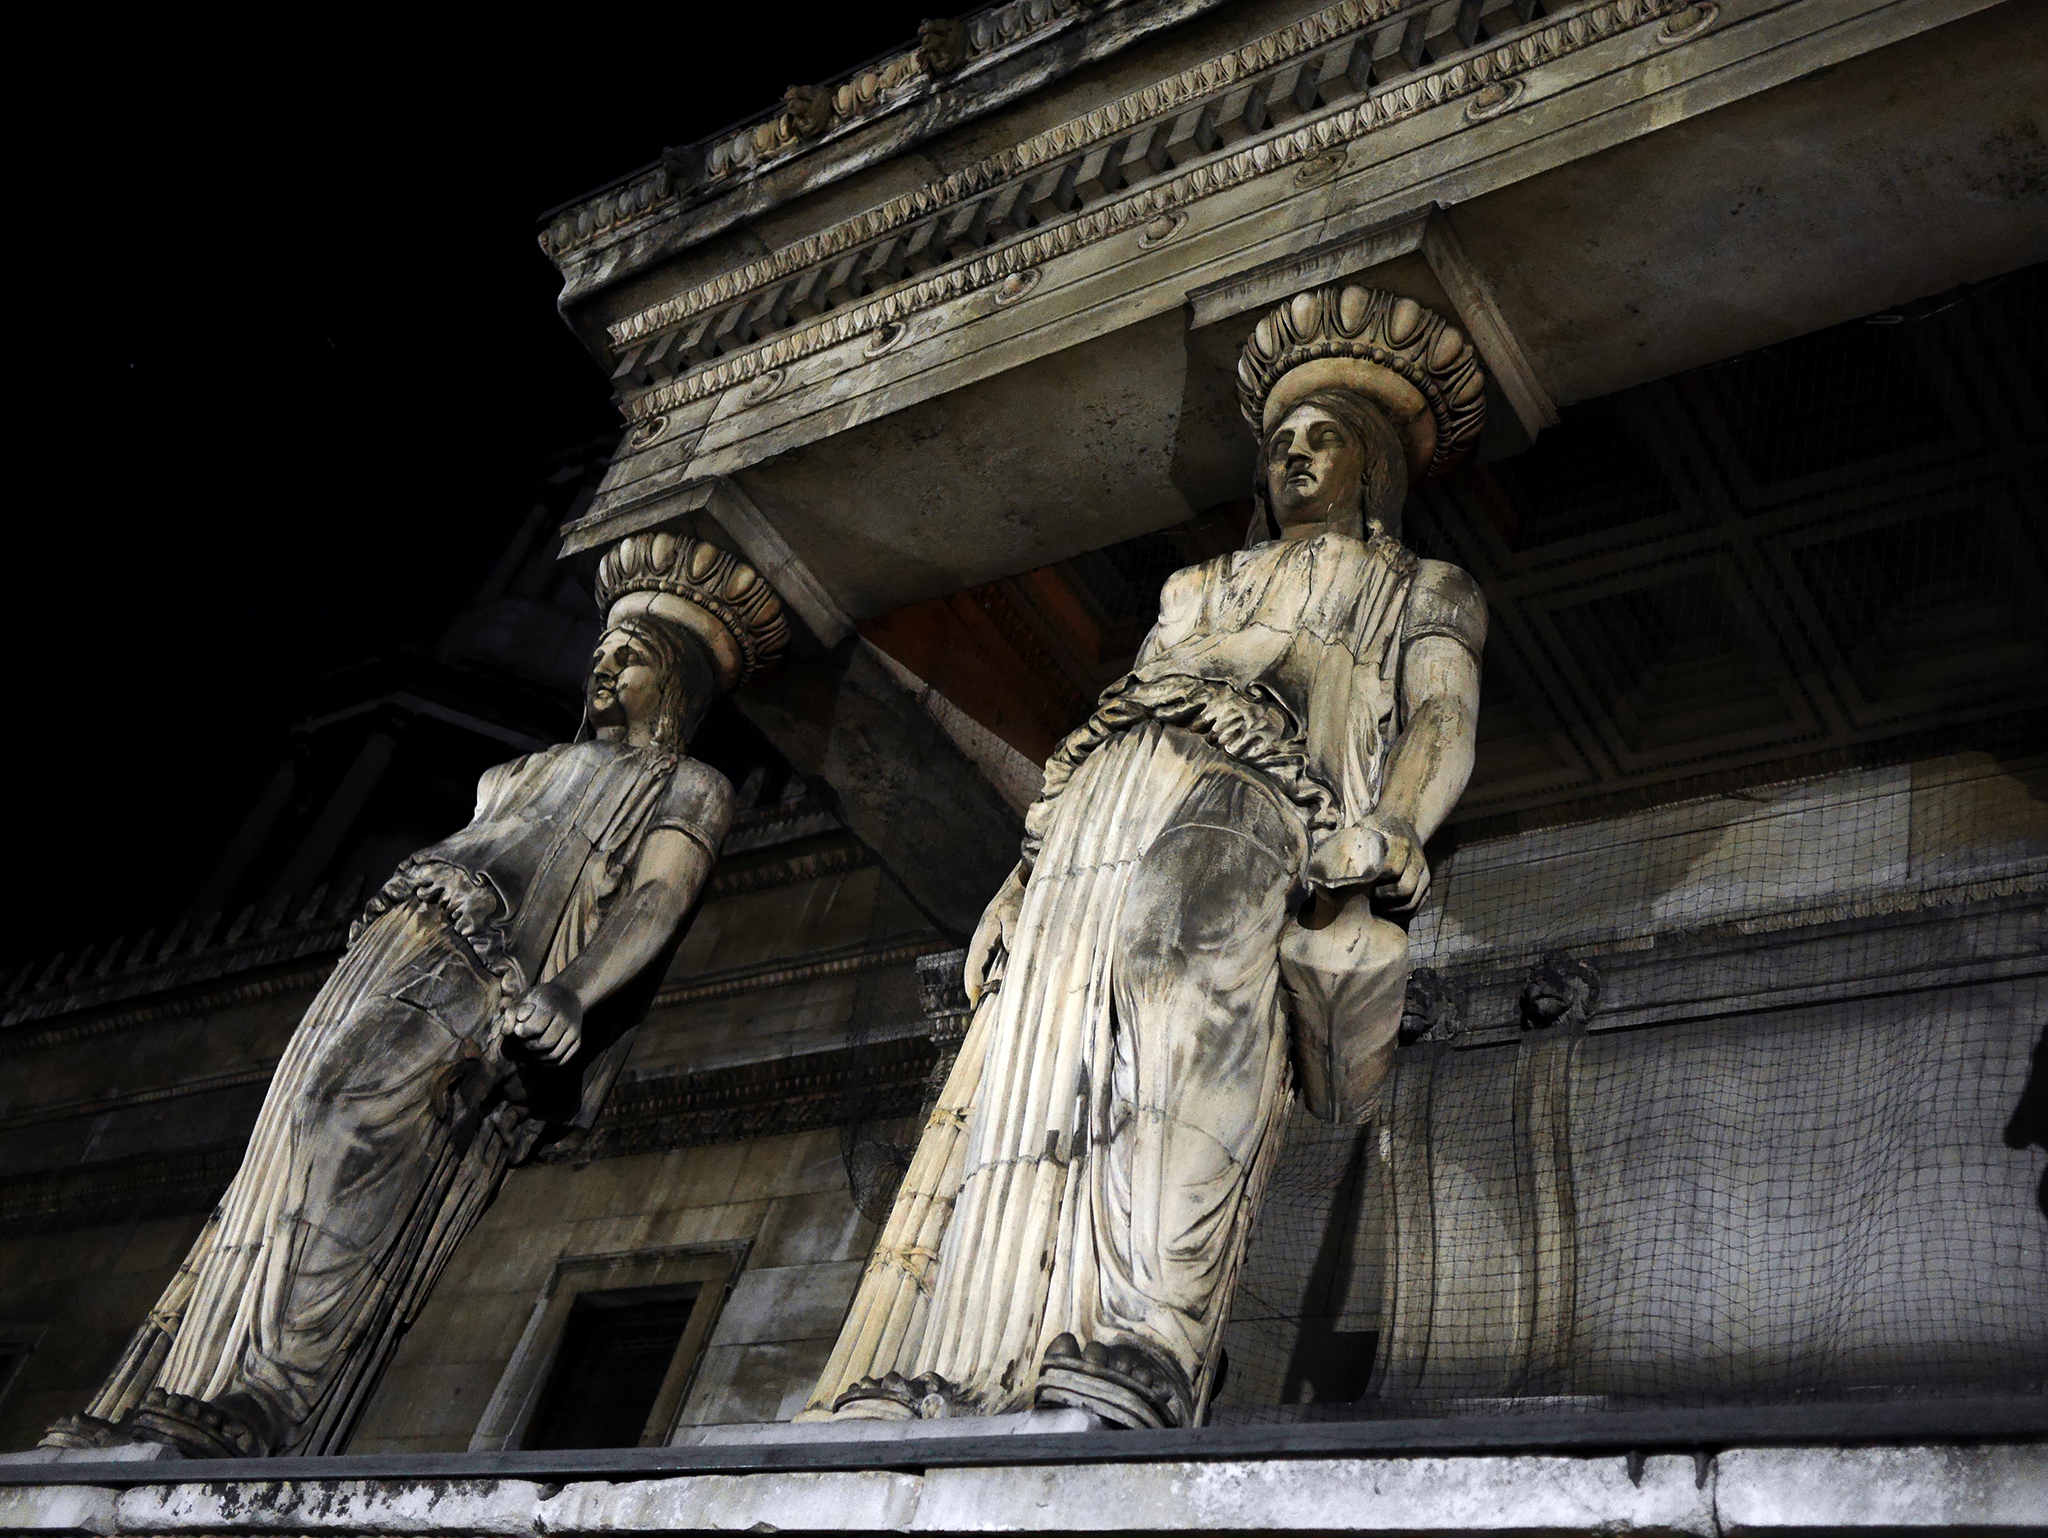 Caryatids guard the crypt